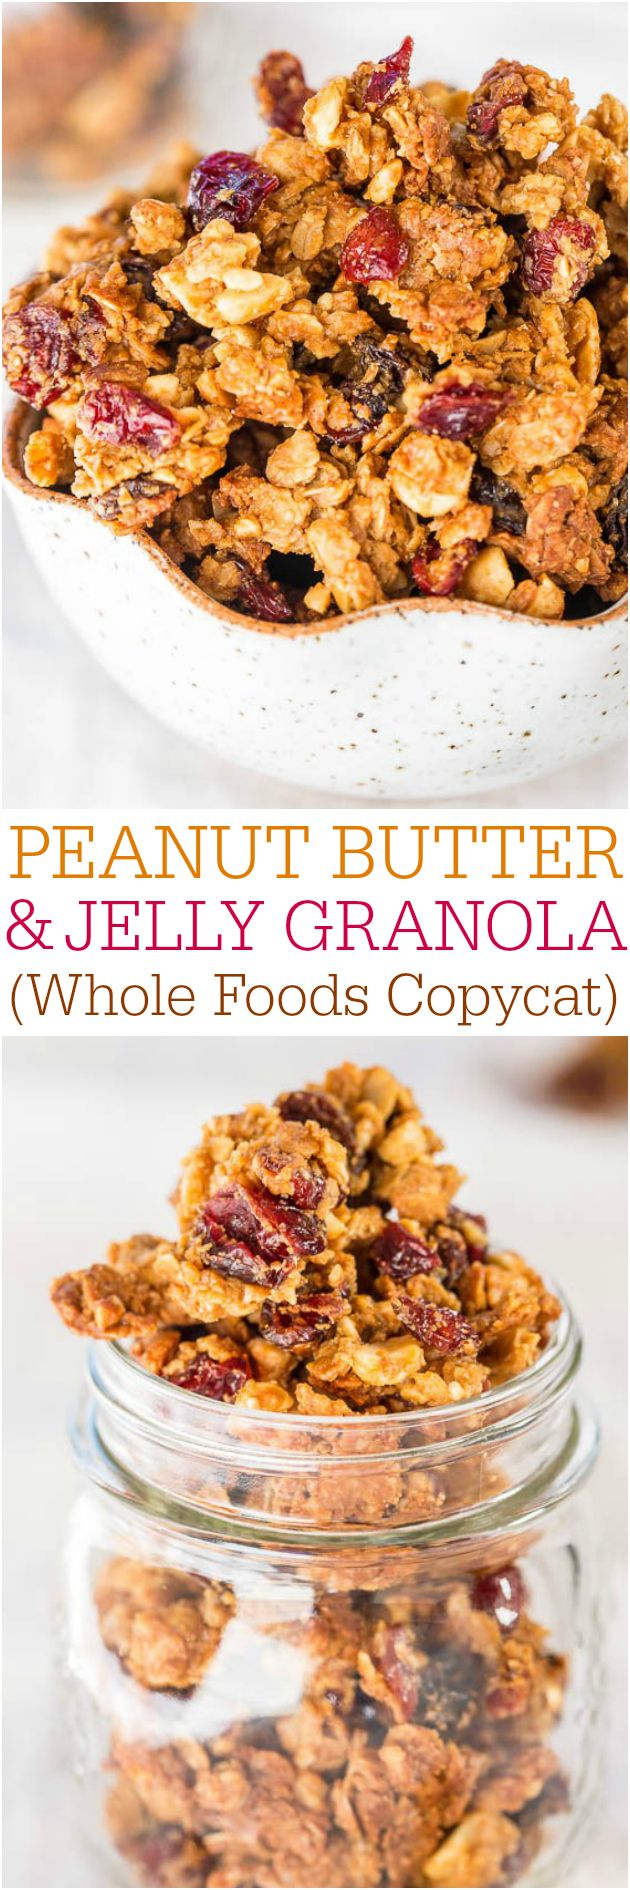 Peanut Butter and Jelly Granola (Whole Foods Copycat)